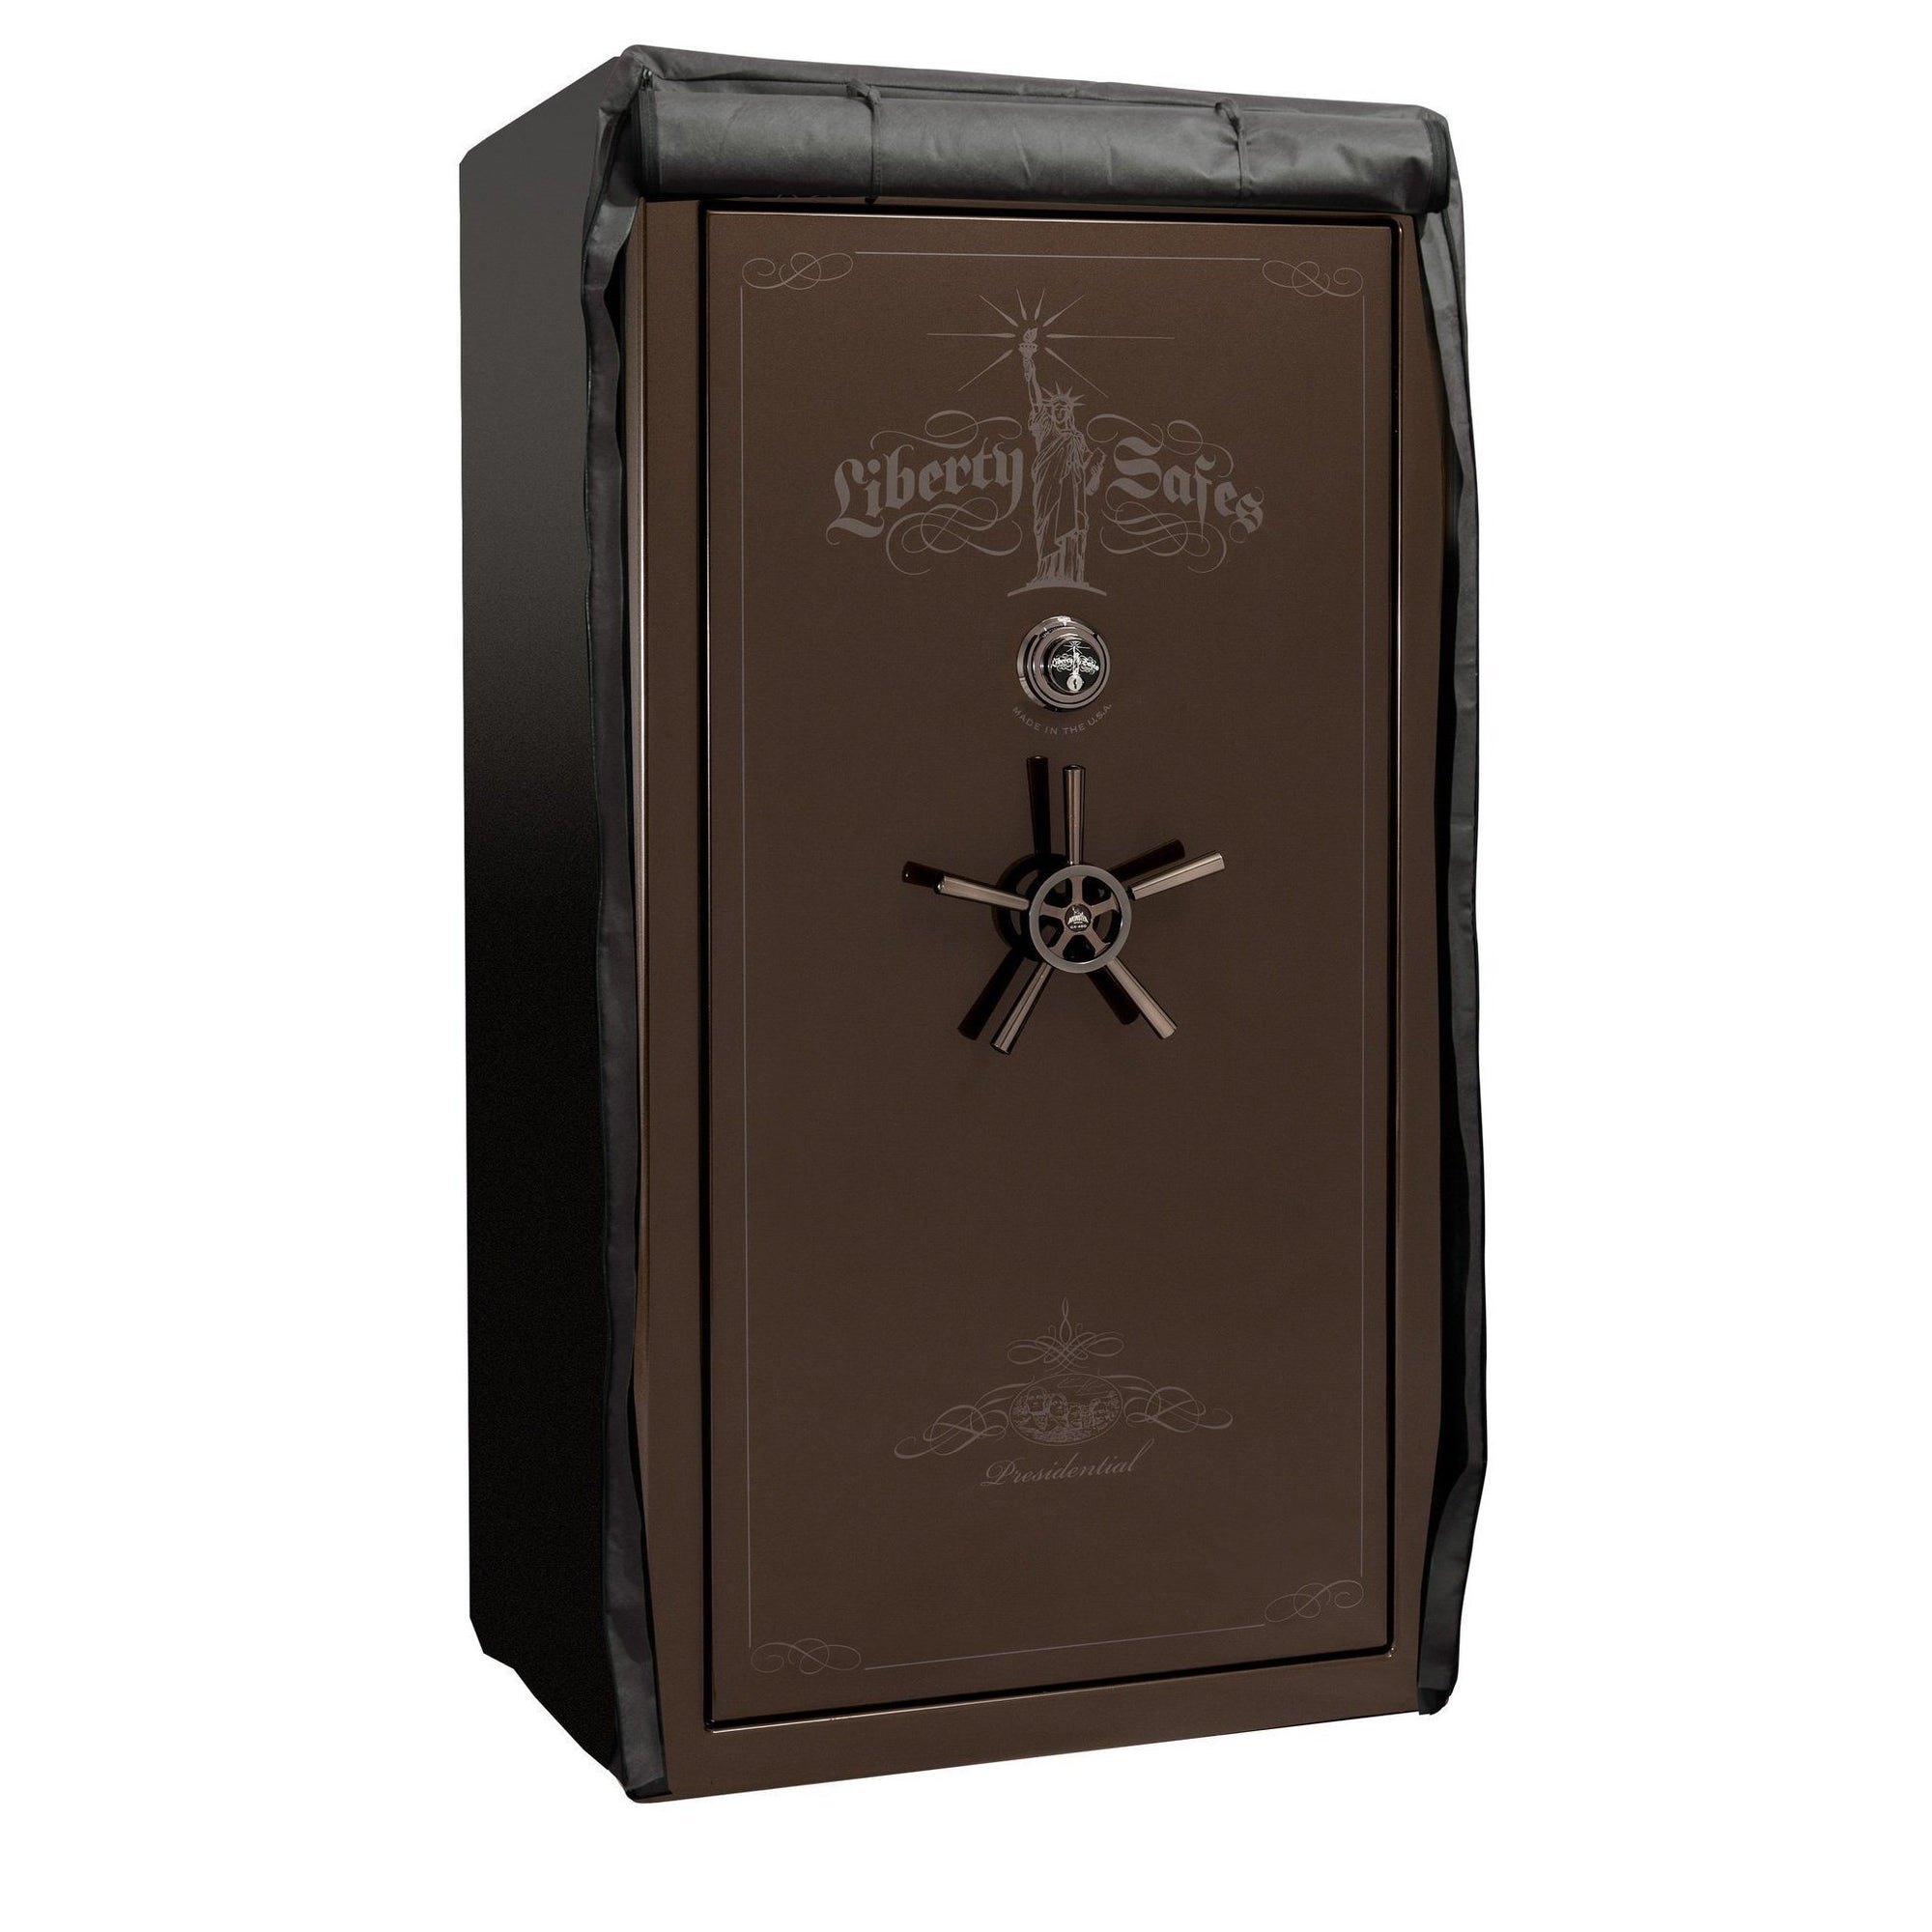 Liberty Safe-accessory-security-safe-cover-40-size-safes